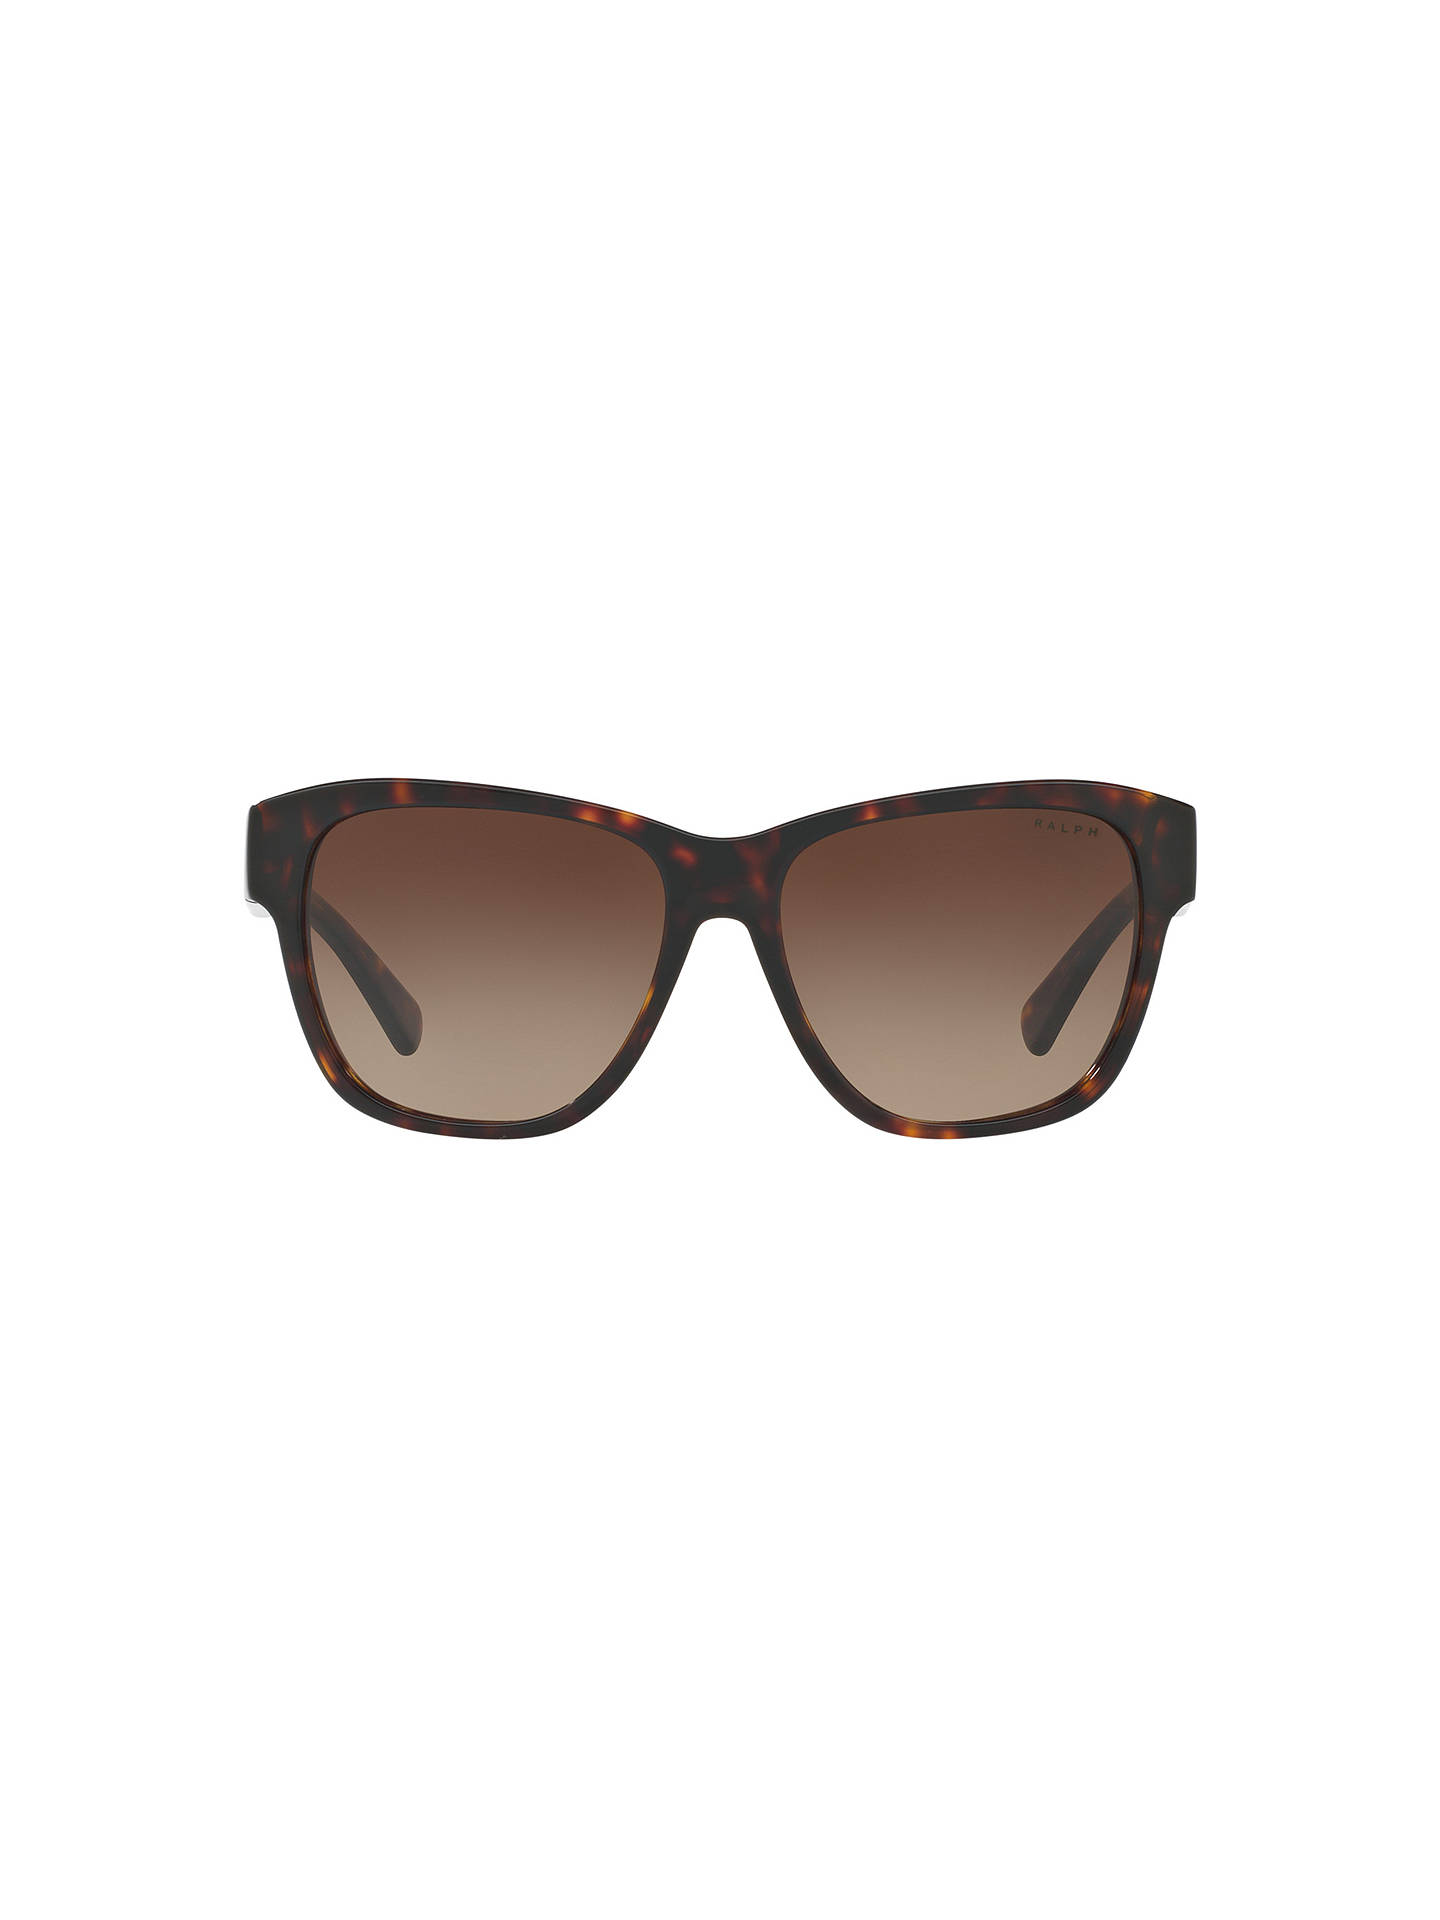 Buy Ralph RA5226 Square Sunglasses, Tortoise/Brown Gradient Online at johnlewis.com